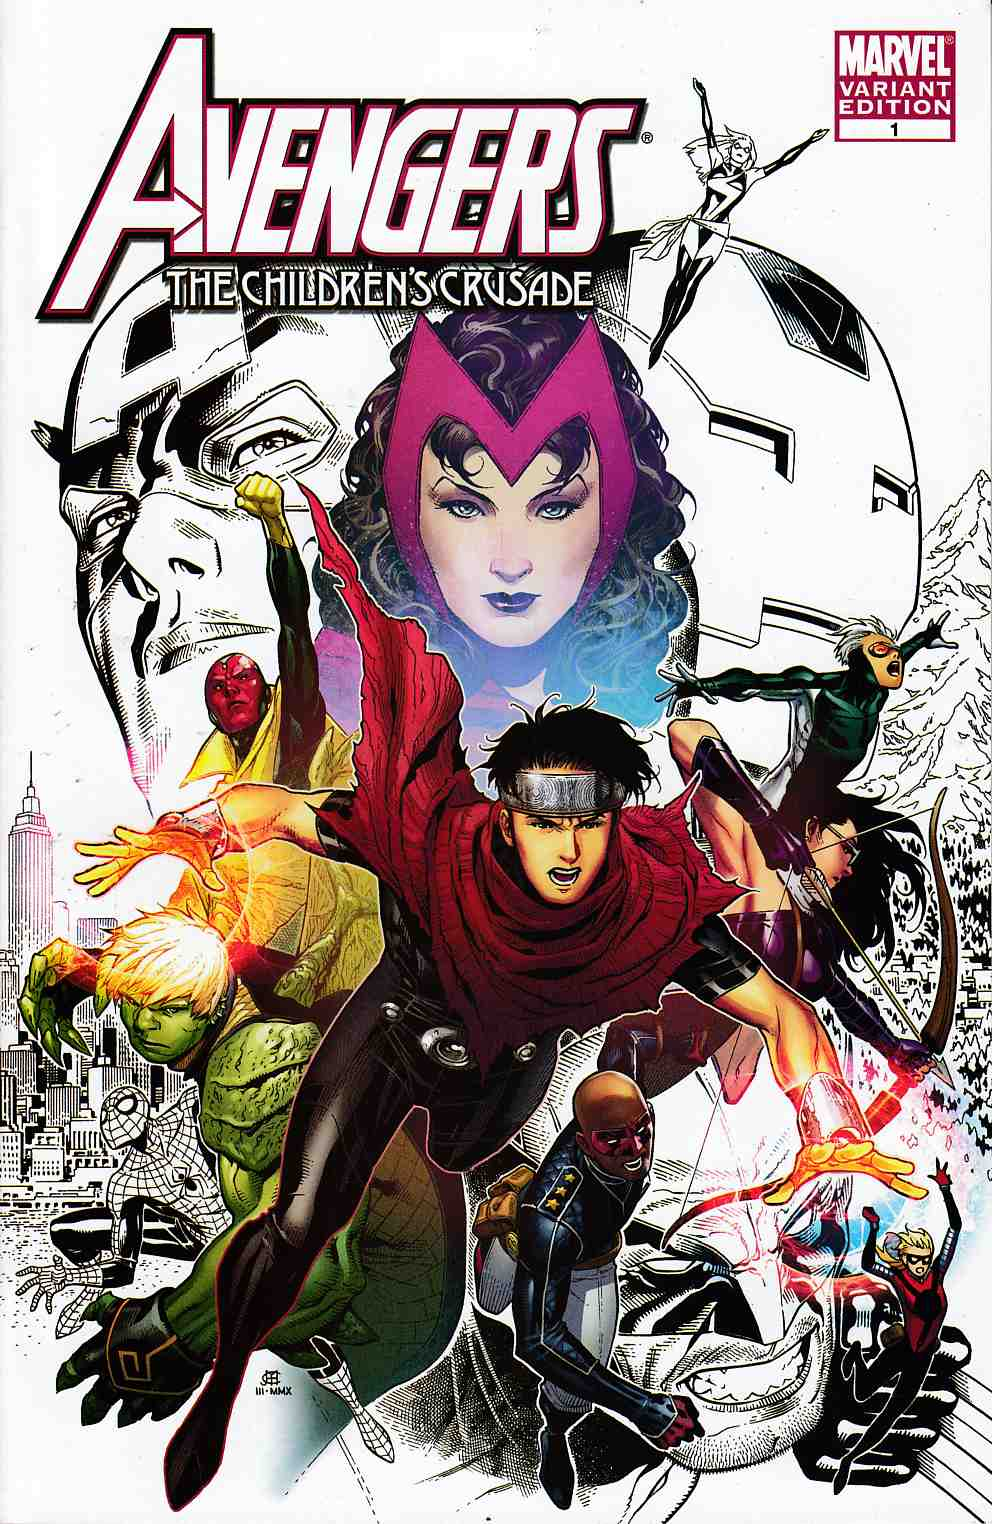 Avengers Childrens Crusade #1 Cheung Partial Sketch Variant Cover Near MInt (9.4) [Marvel Comic] THUMBNAIL